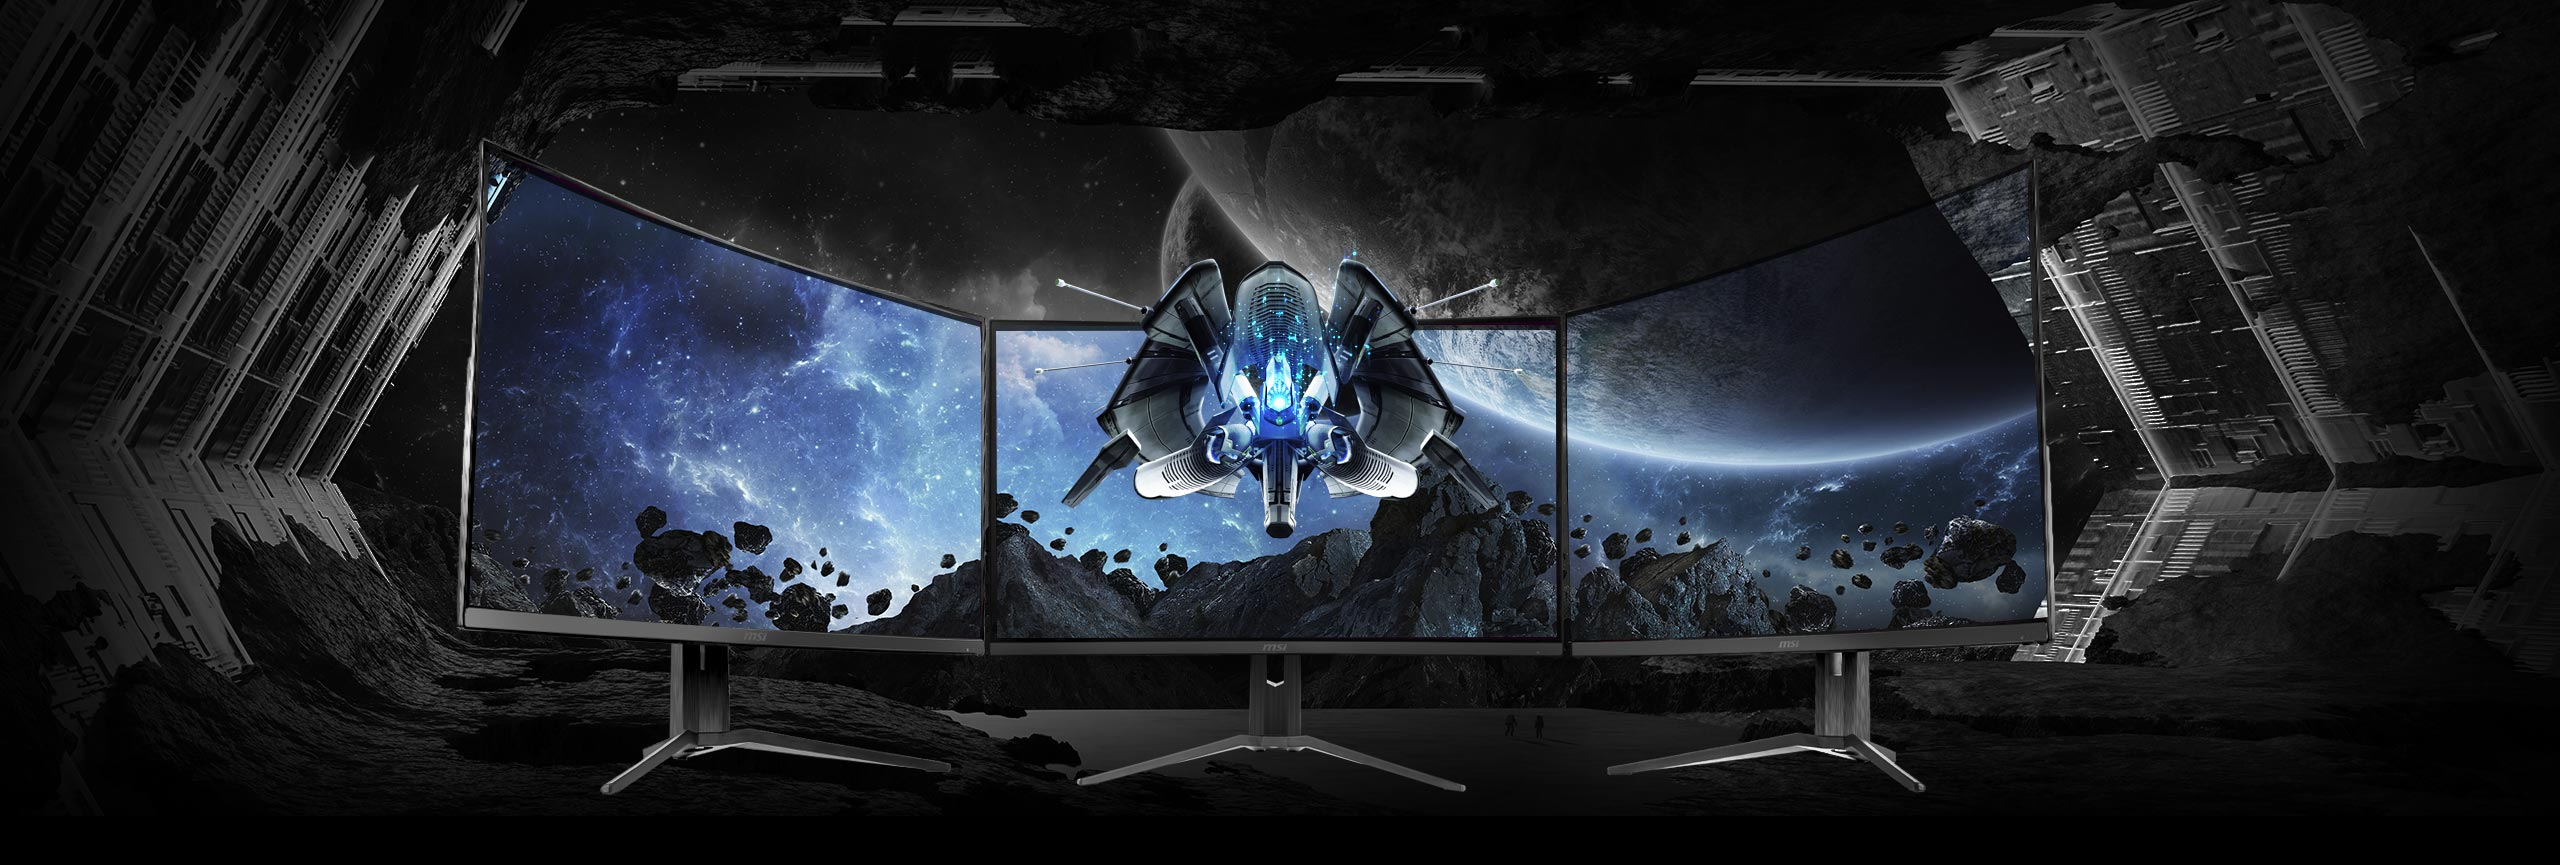 three monitors side-by-side with a space image as screen